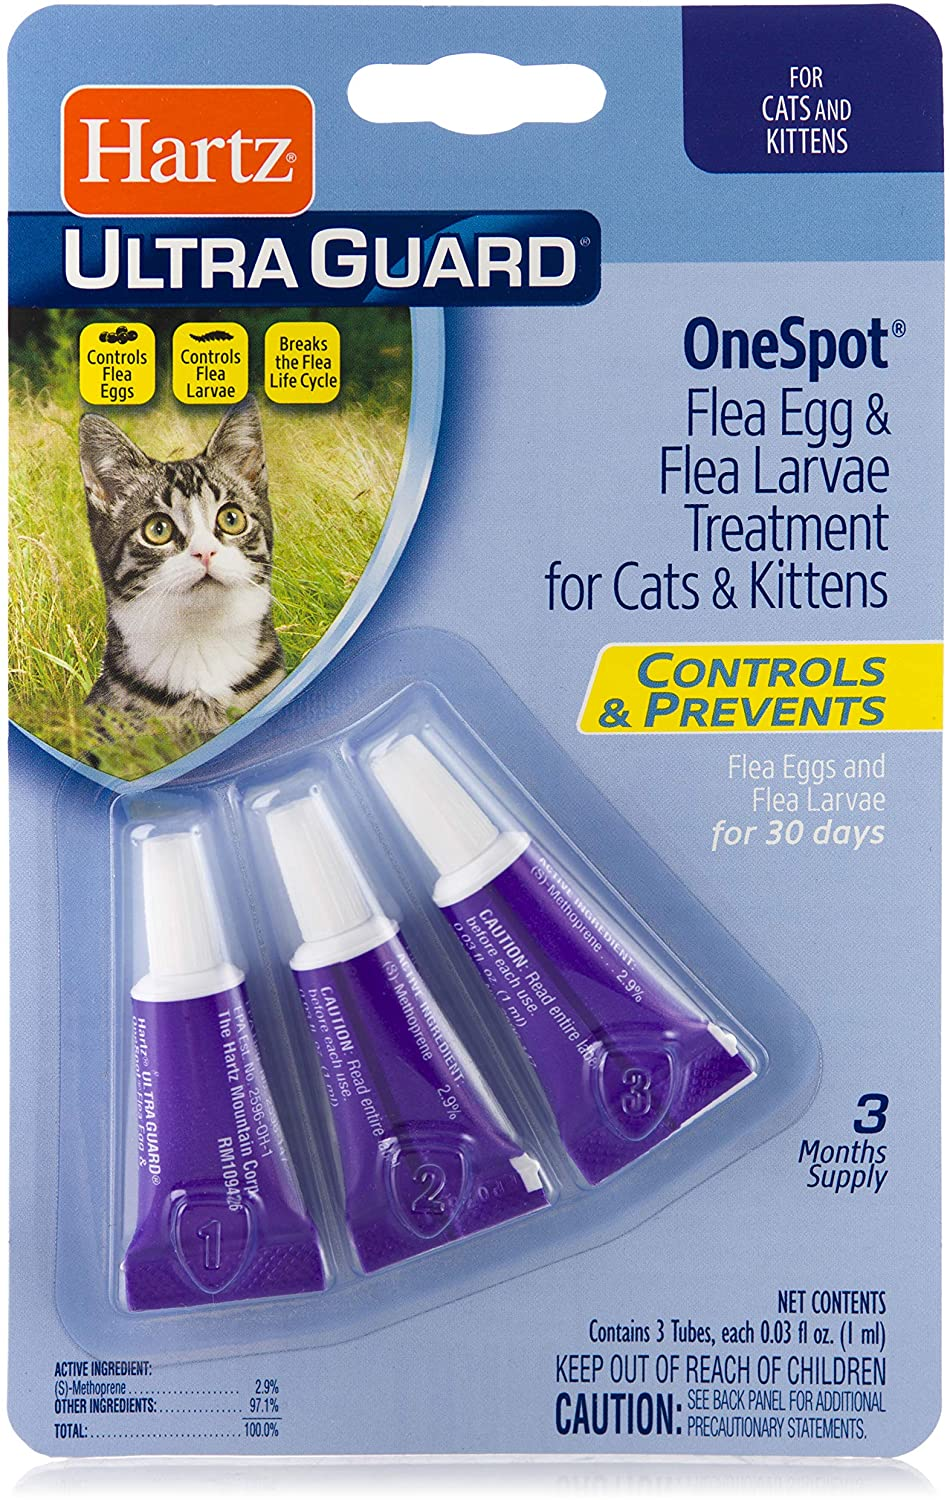 Ultraguard One Spot Treatment for Cats